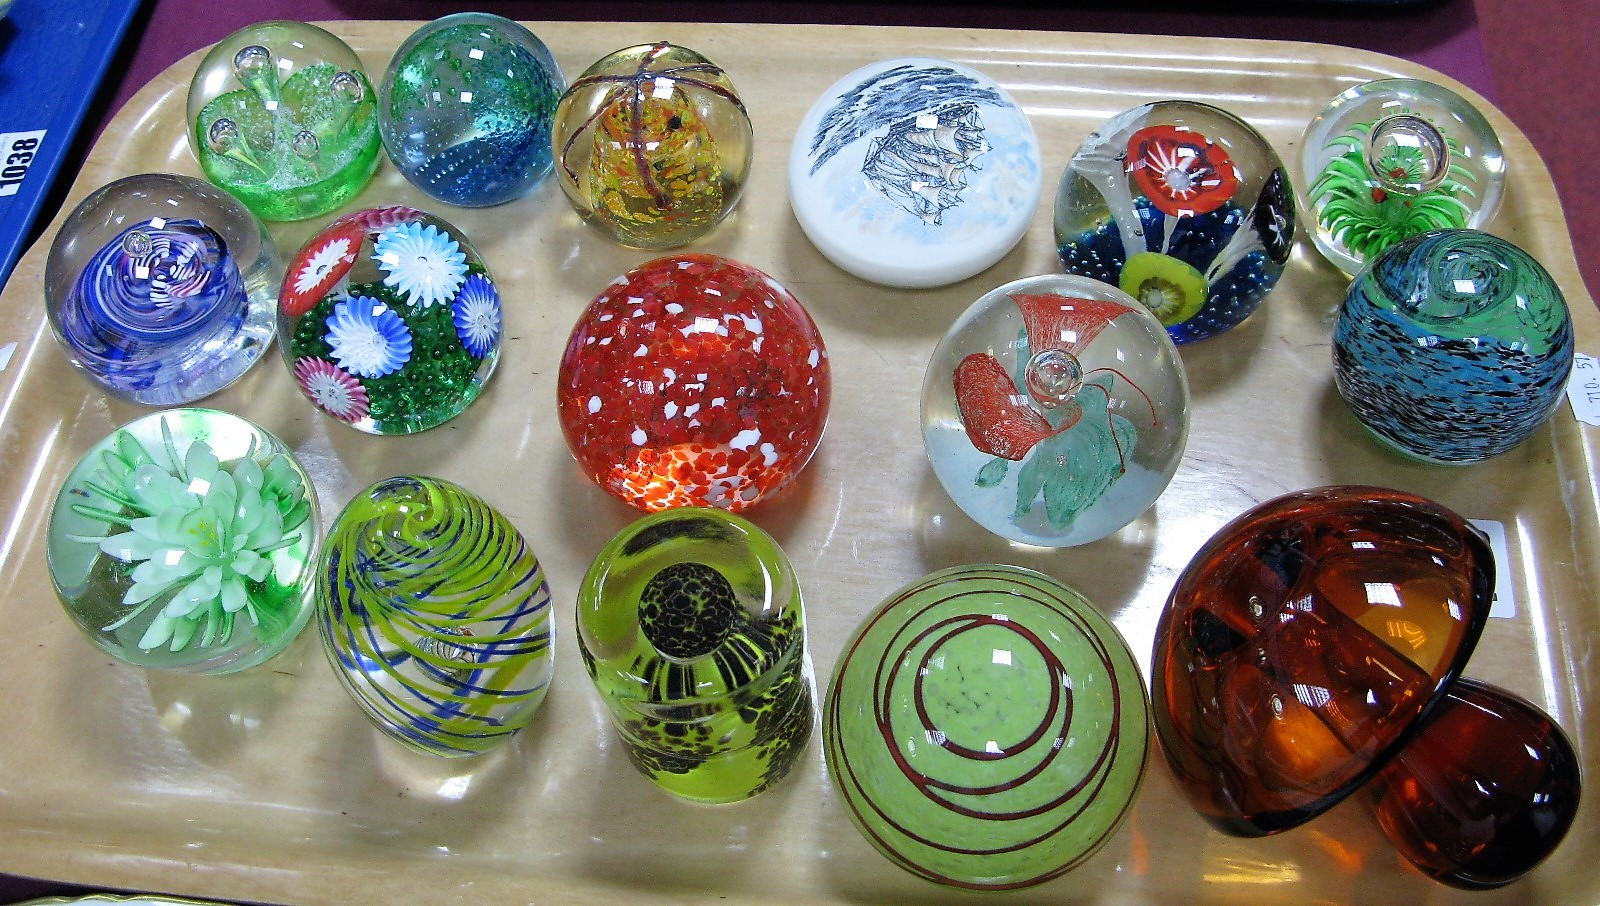 Lot 1039 - Glass Paperweights, to include mushroom, swirl, Murano Galleon. (16):- One Tray